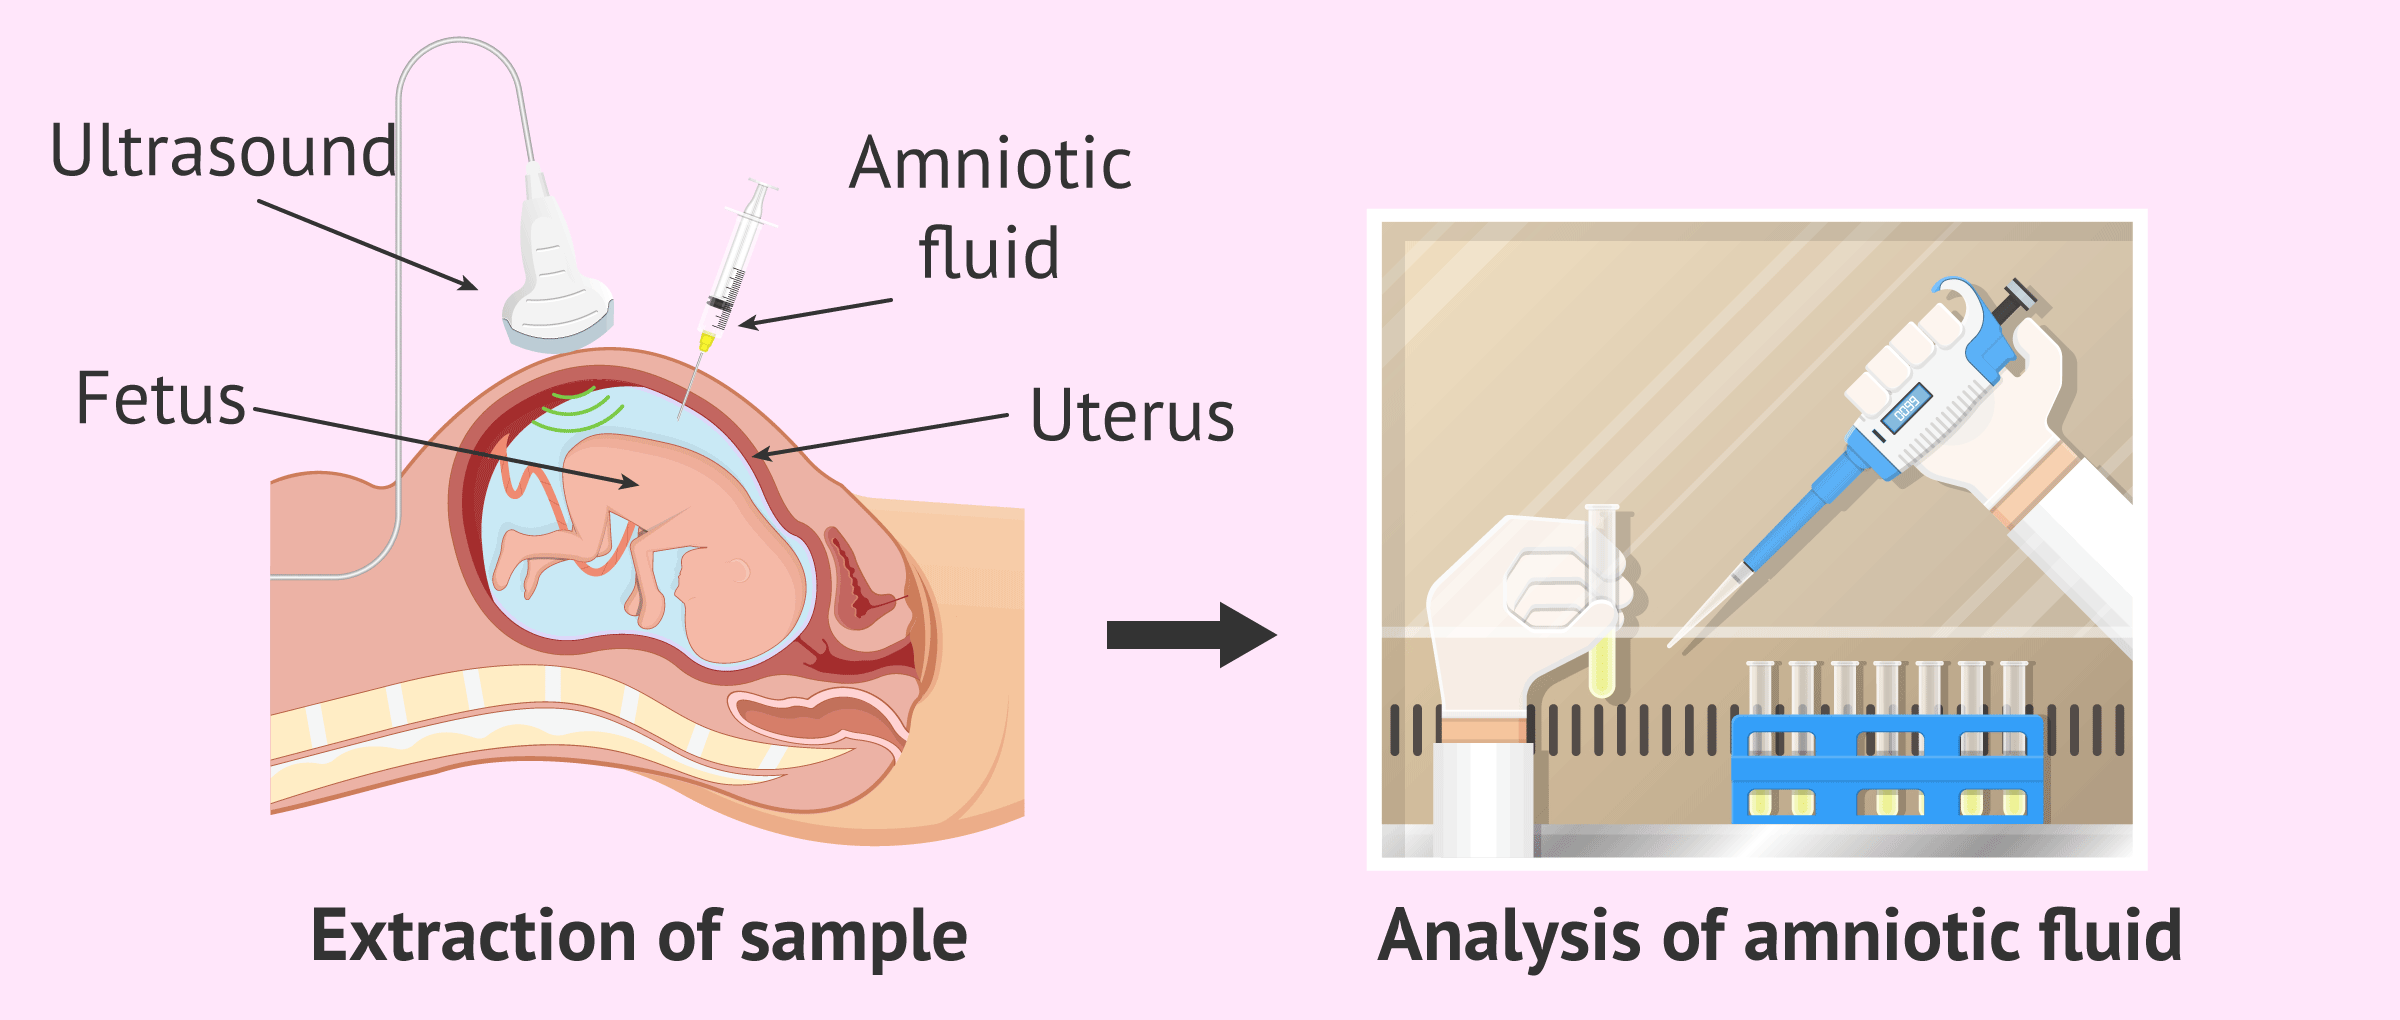 Methods of Prenatal Testing